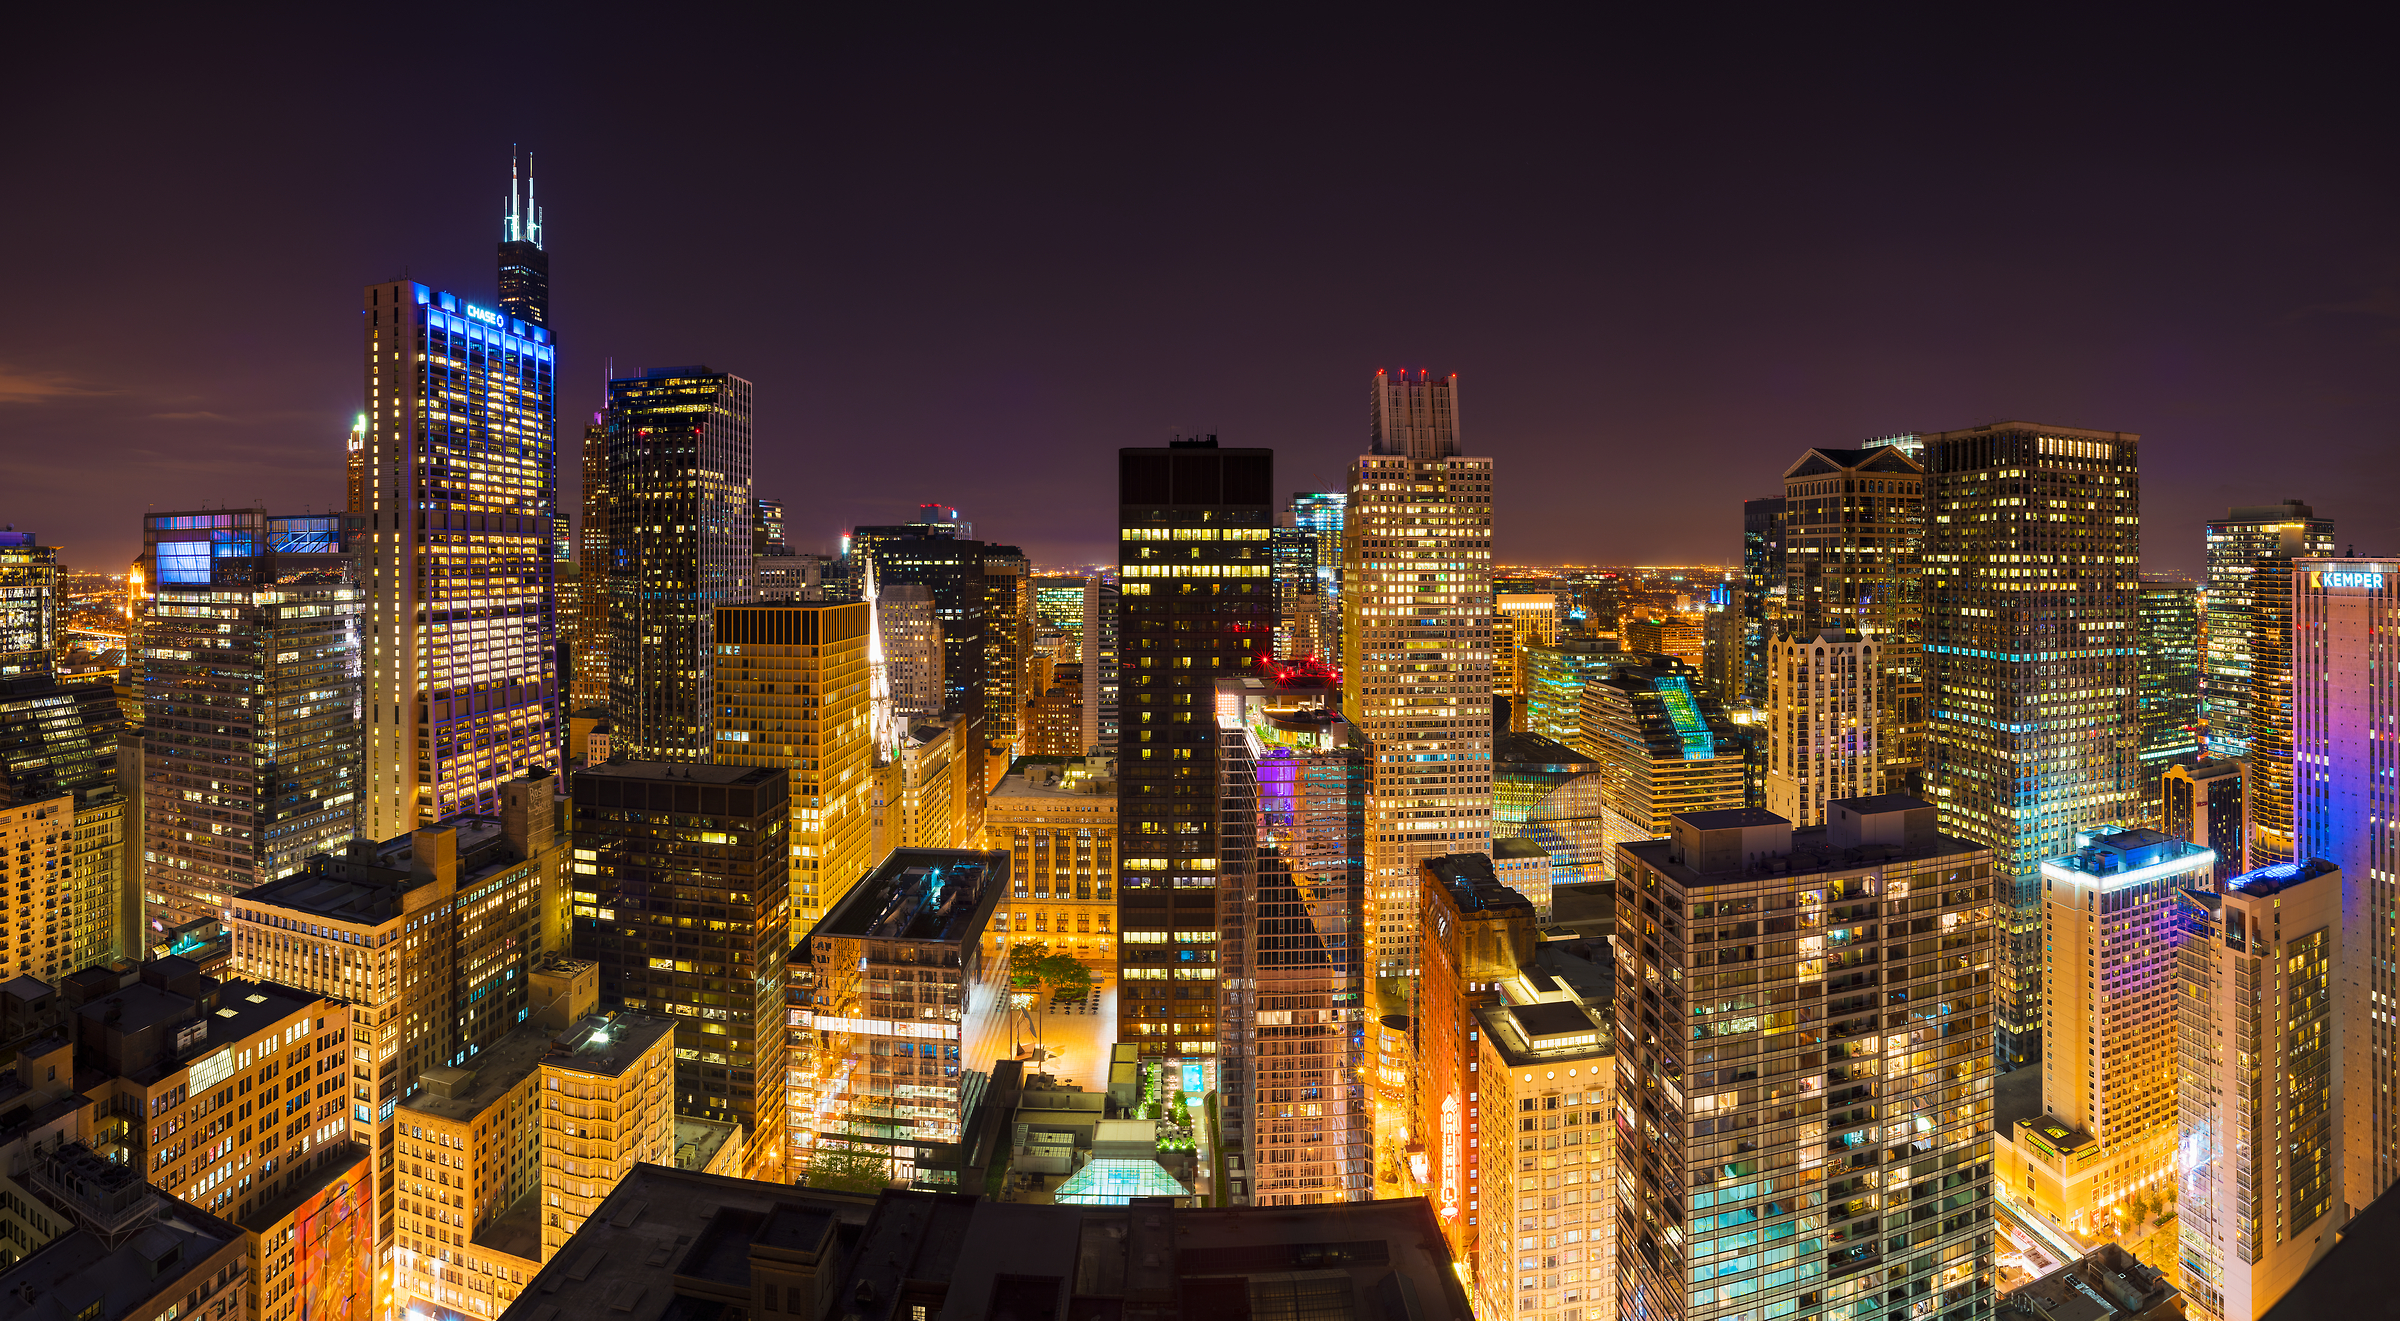 297 megapixels! A very high resolution, large-format VAST photo of a cityscape at night; skyline photograph created by Jim Tarpo in Chicago, Illinois